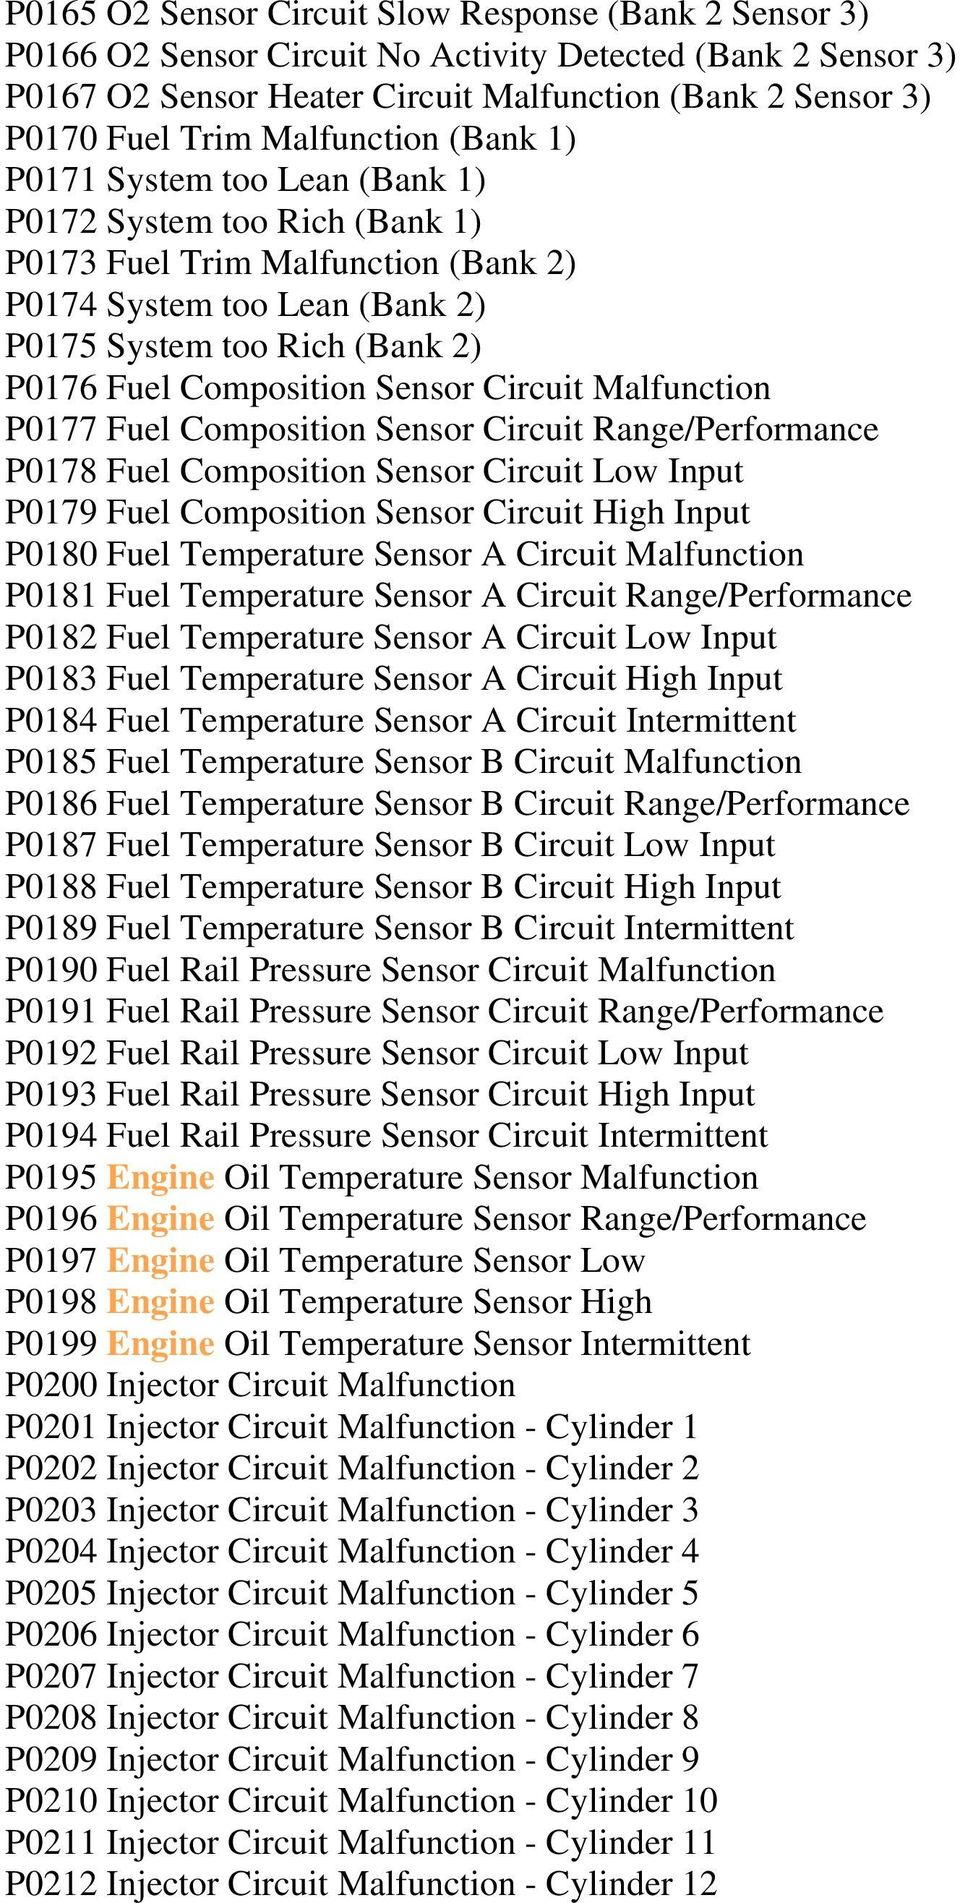 medium resolution of composition sensor circuit malfunction p0177 fuel composition sensor circuit range performance p0178 fuel composition sensor